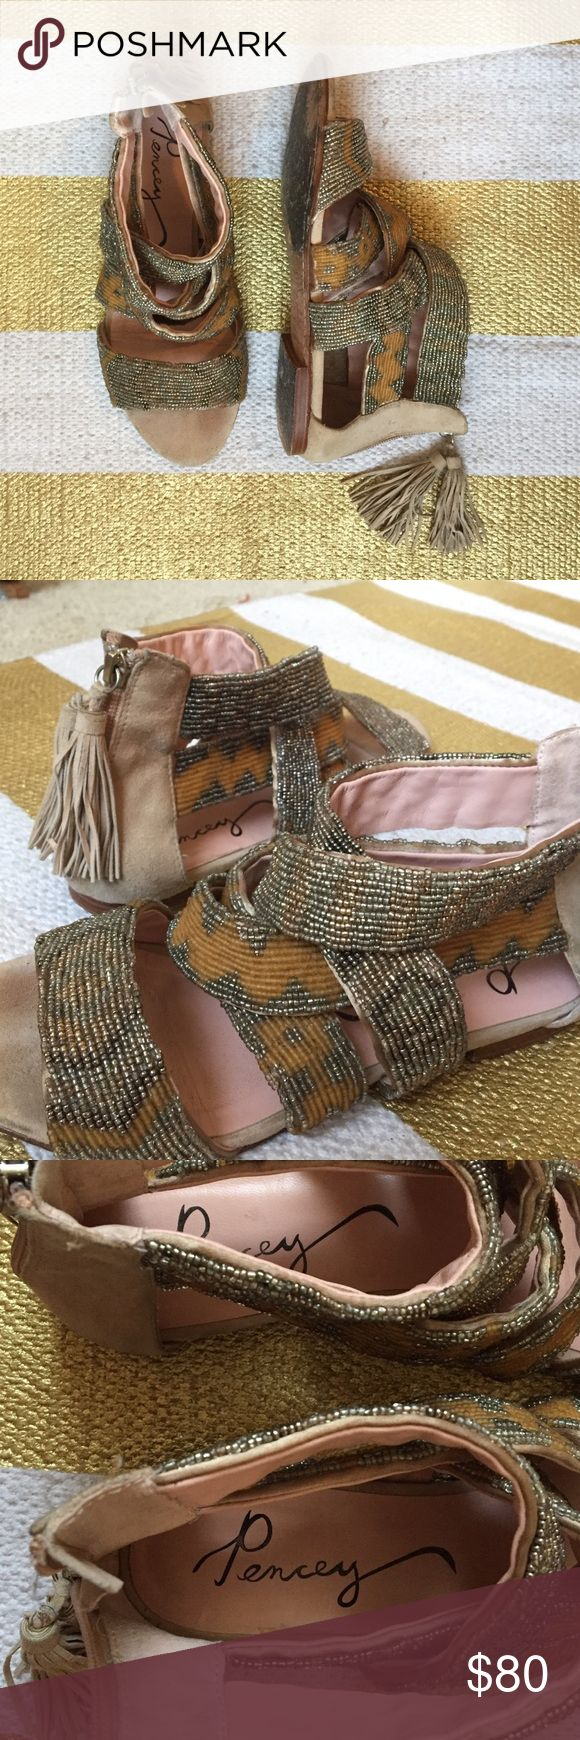 Dante Sandal by Pencey Criss-cross strap sandals with beautiful beaded geometric patterns. Tasseled zipper closers in the back. Cream suede. Very comfortable! Leather interior. Great neutral sandal with just enough pizazz. Anthropologie Shoes Sandals